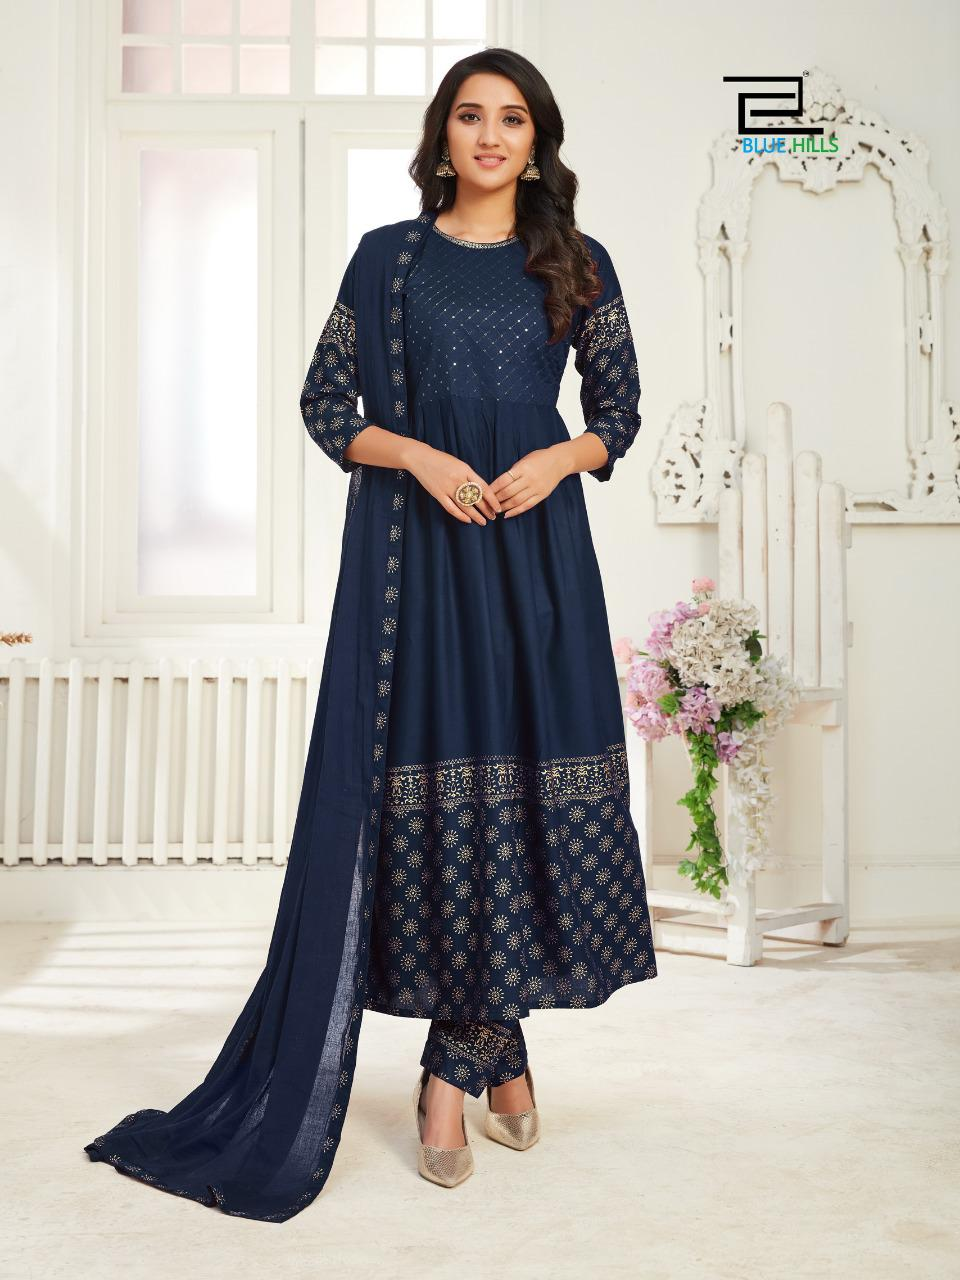 Blue Hills Dholna Kurti with Dupatta Bottom Wholesale Catalog 5 Pcs 3 - Blue Hills Dholna Kurti with Dupatta Bottom Wholesale Catalog 5 Pcs